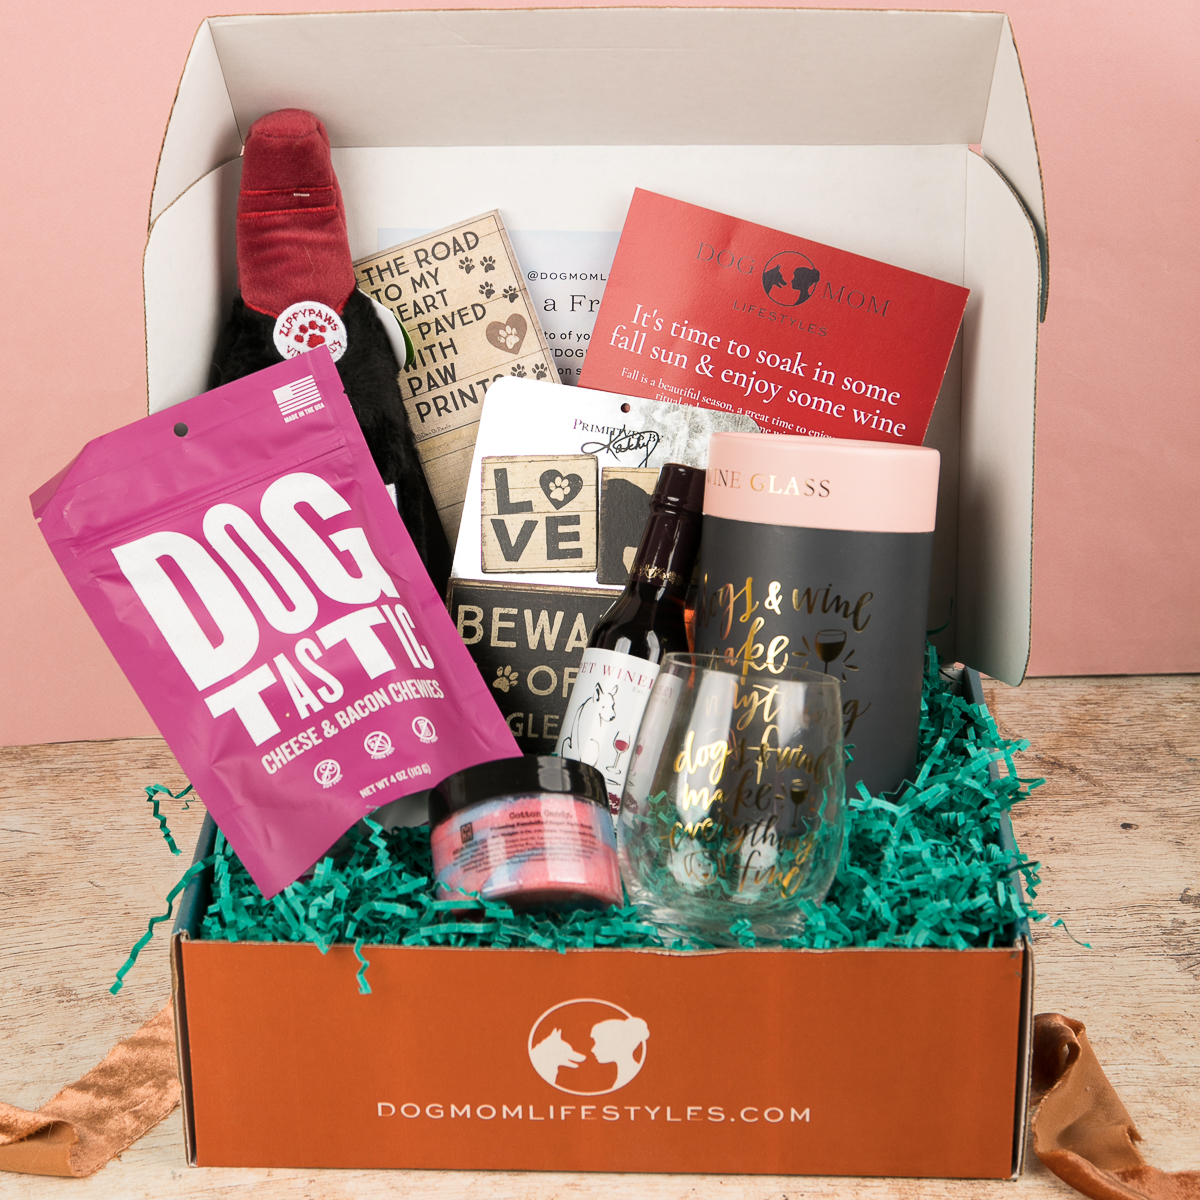 open box with dog treats and toys